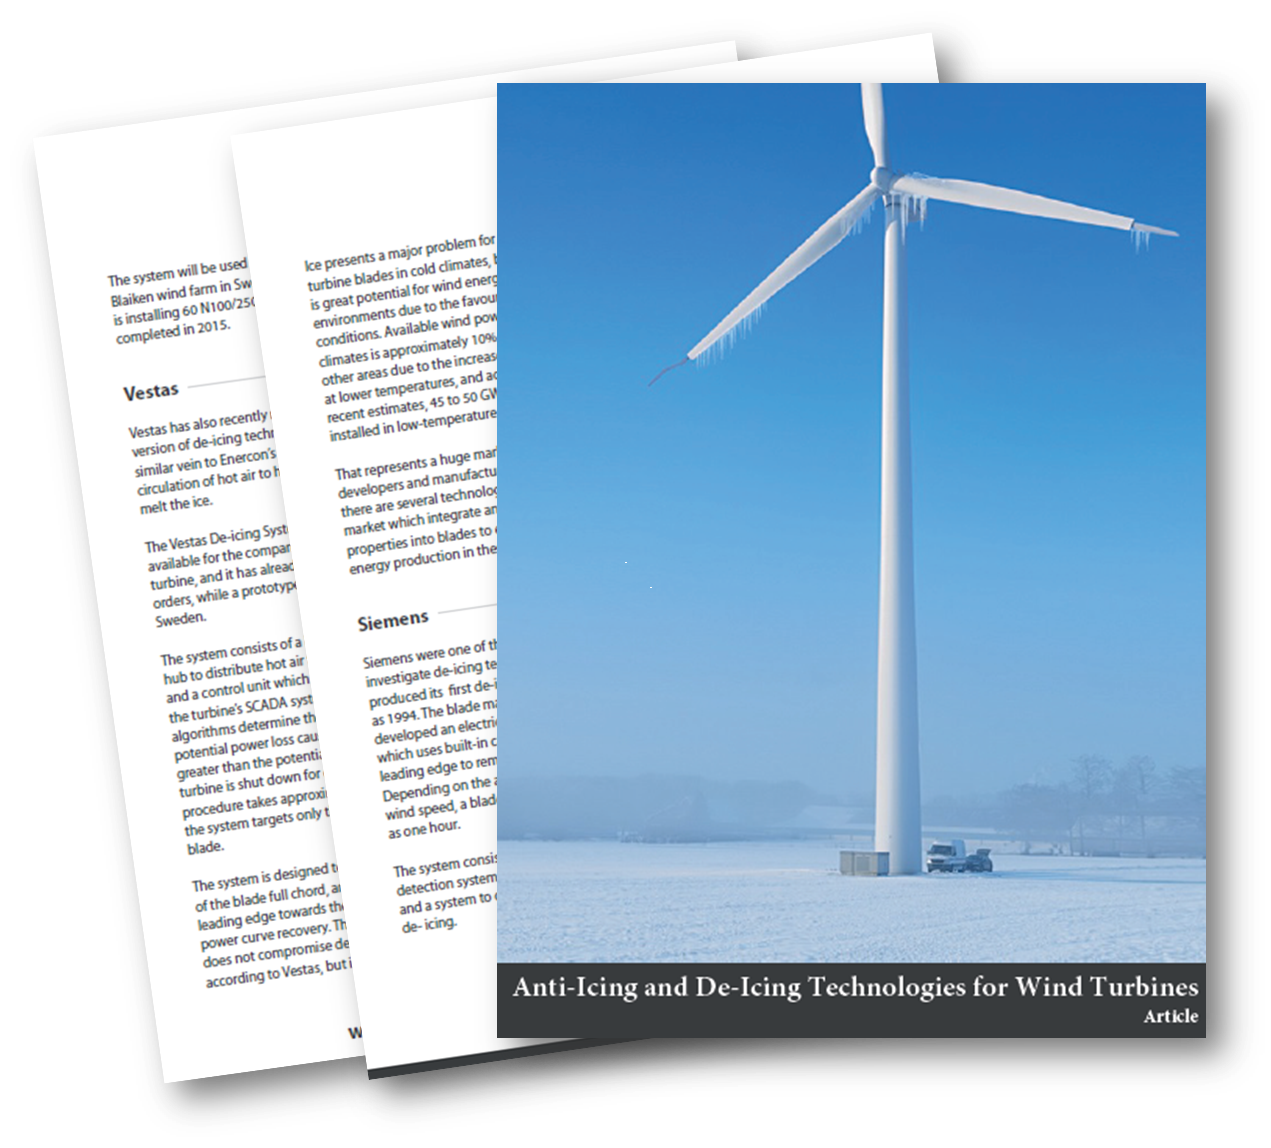 Anti-icing and De-icing Technologies for Wind Turbines